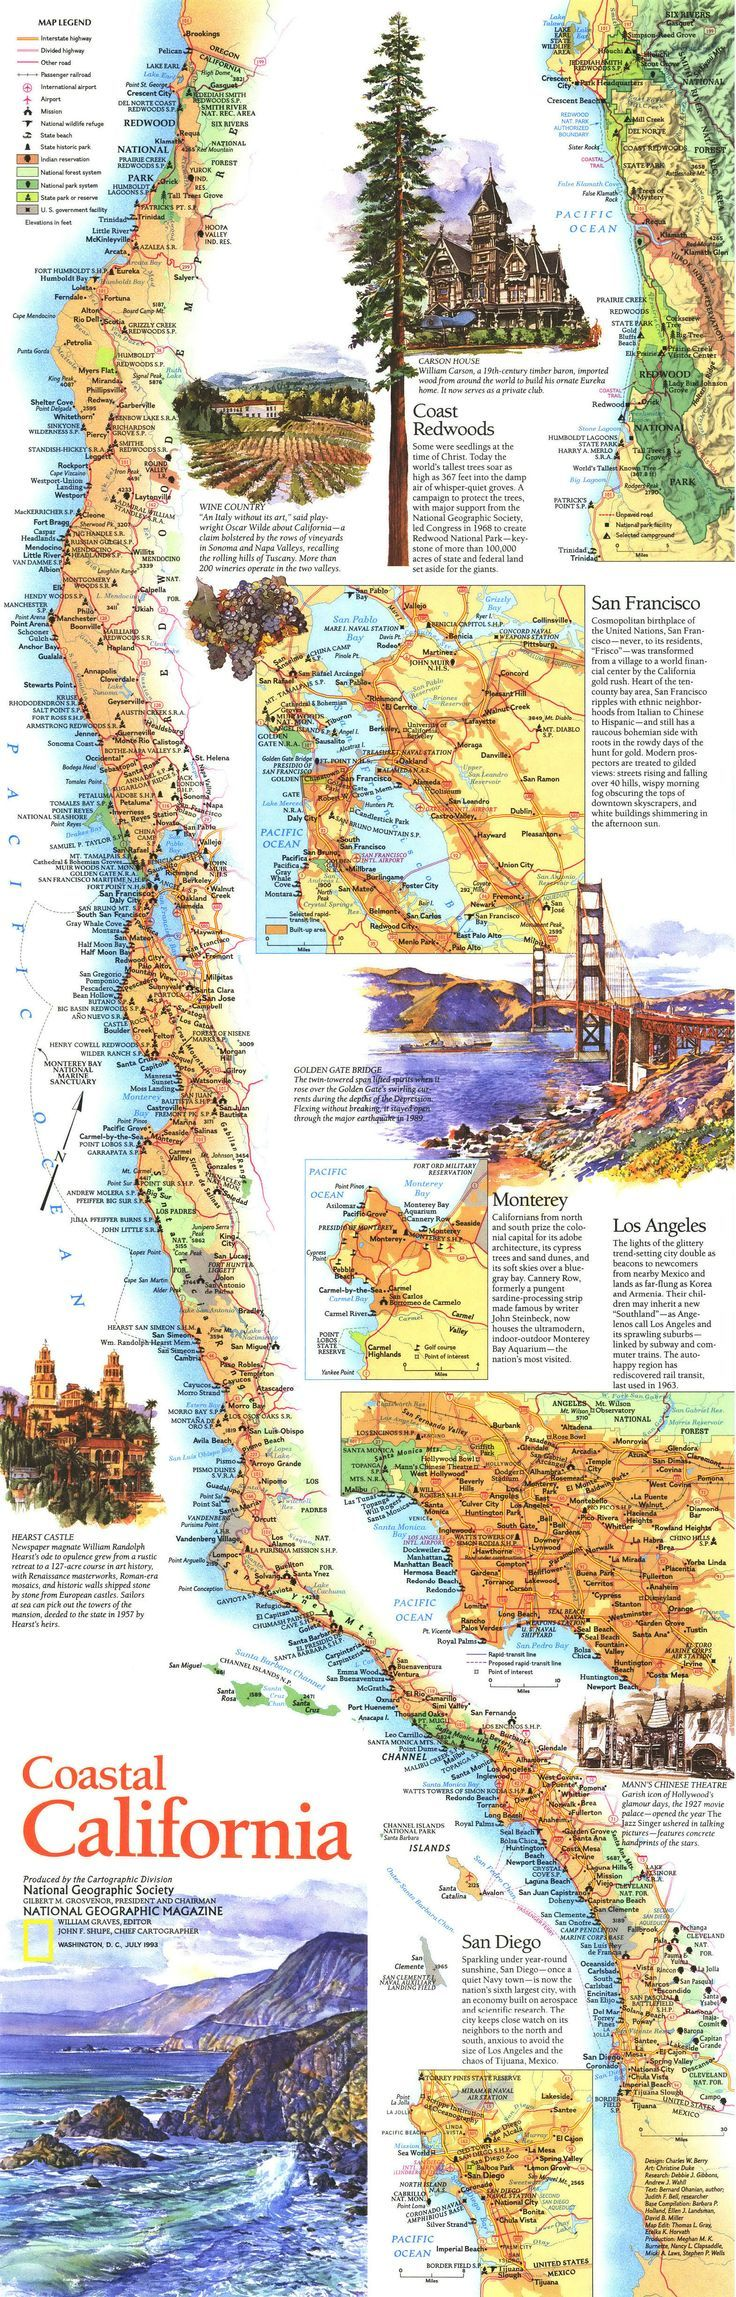 California Coastal Map we have done this